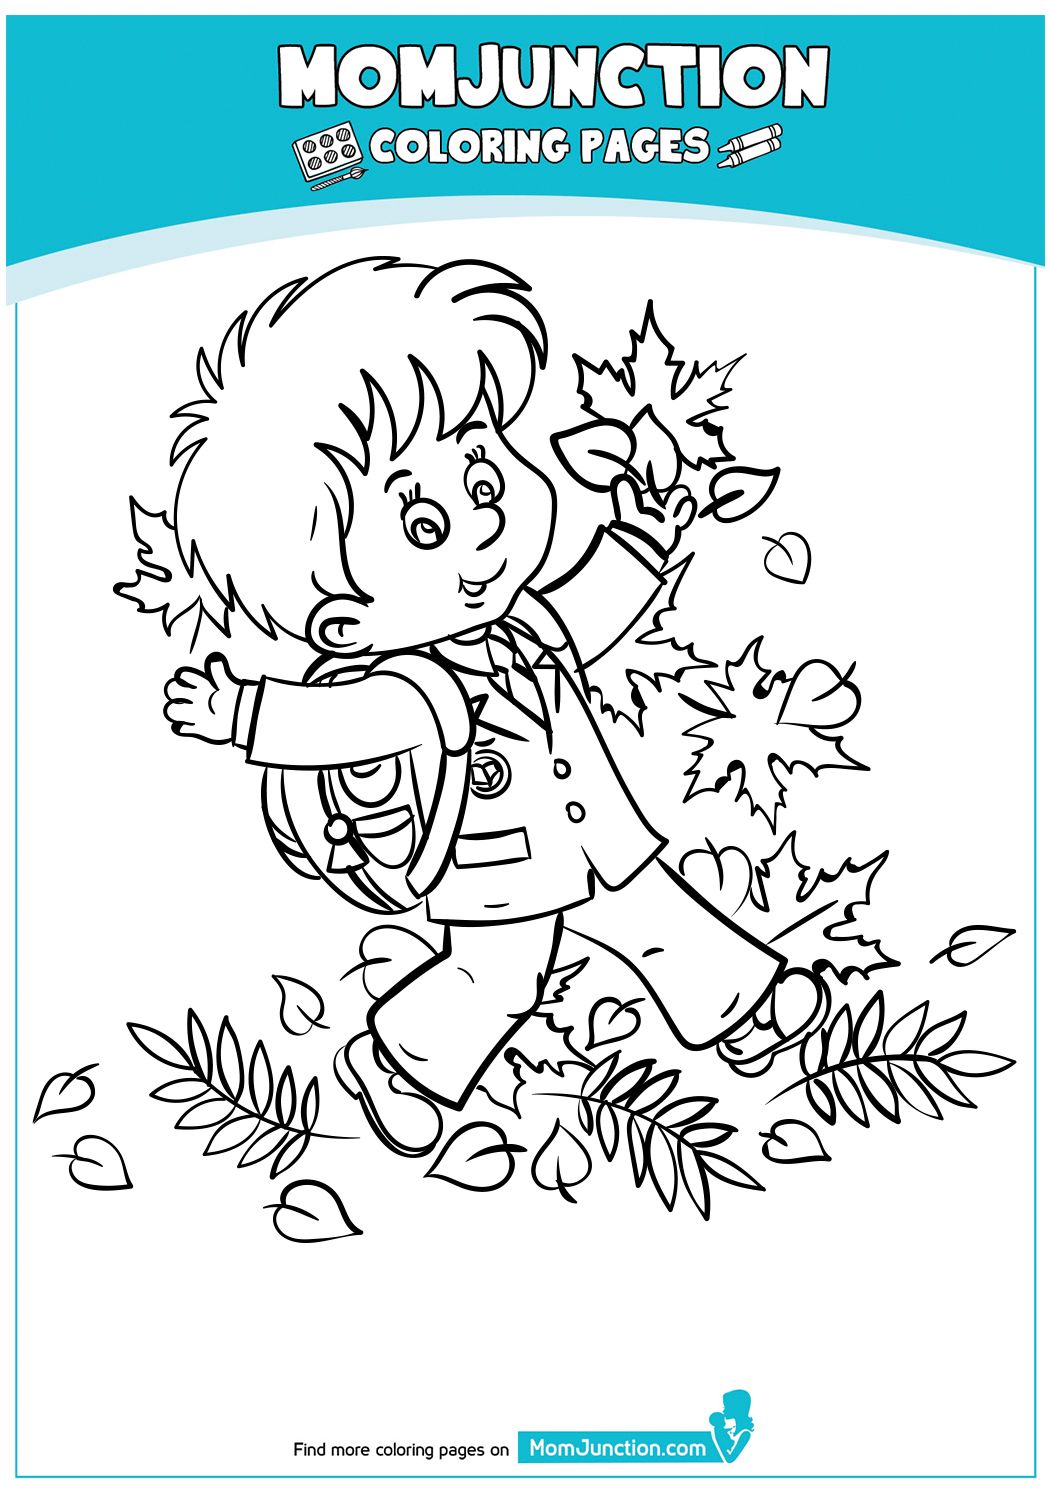 Schoolboy Autumn Leaves Coloring Pages Fall Coloring Pages Coloring Pages For Boys